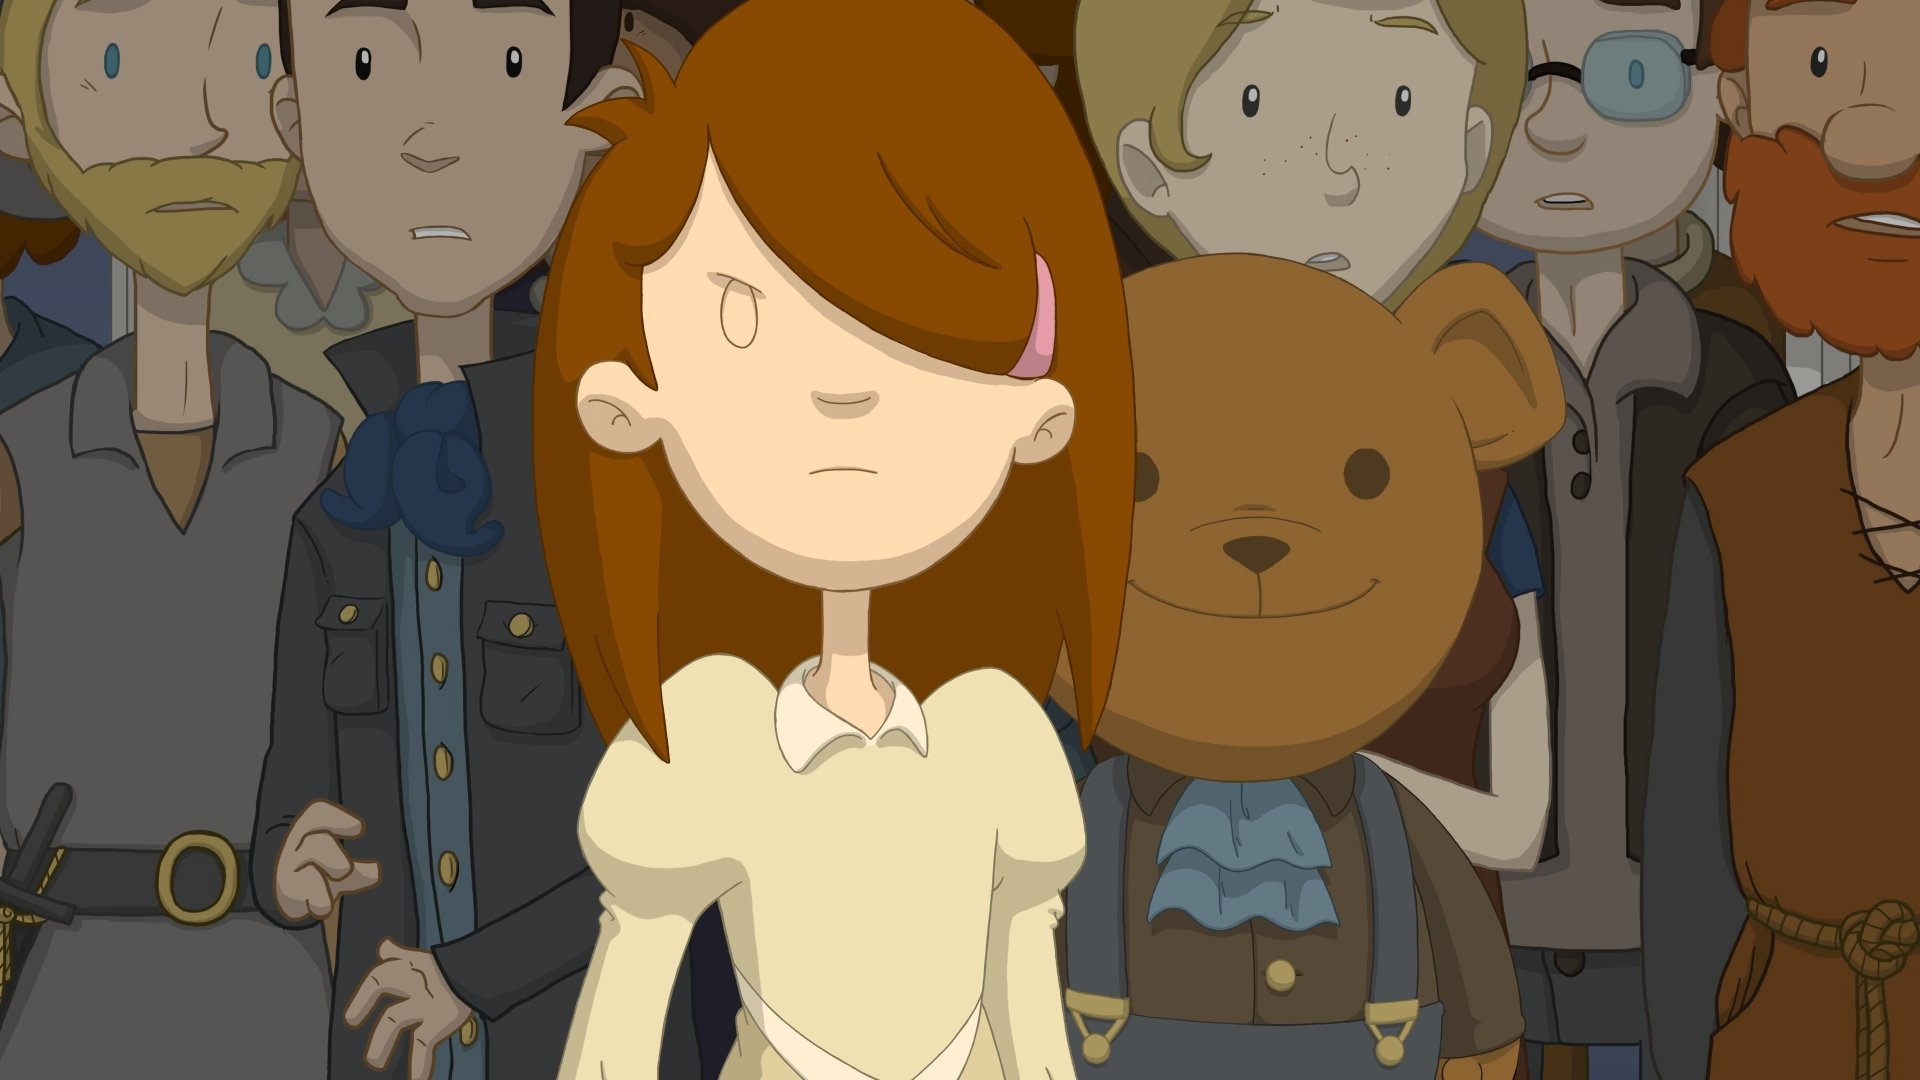 A screenshot from Anna's Quest, Anna standing in the foreground with a crowd behind, including an enormous teddy bear.